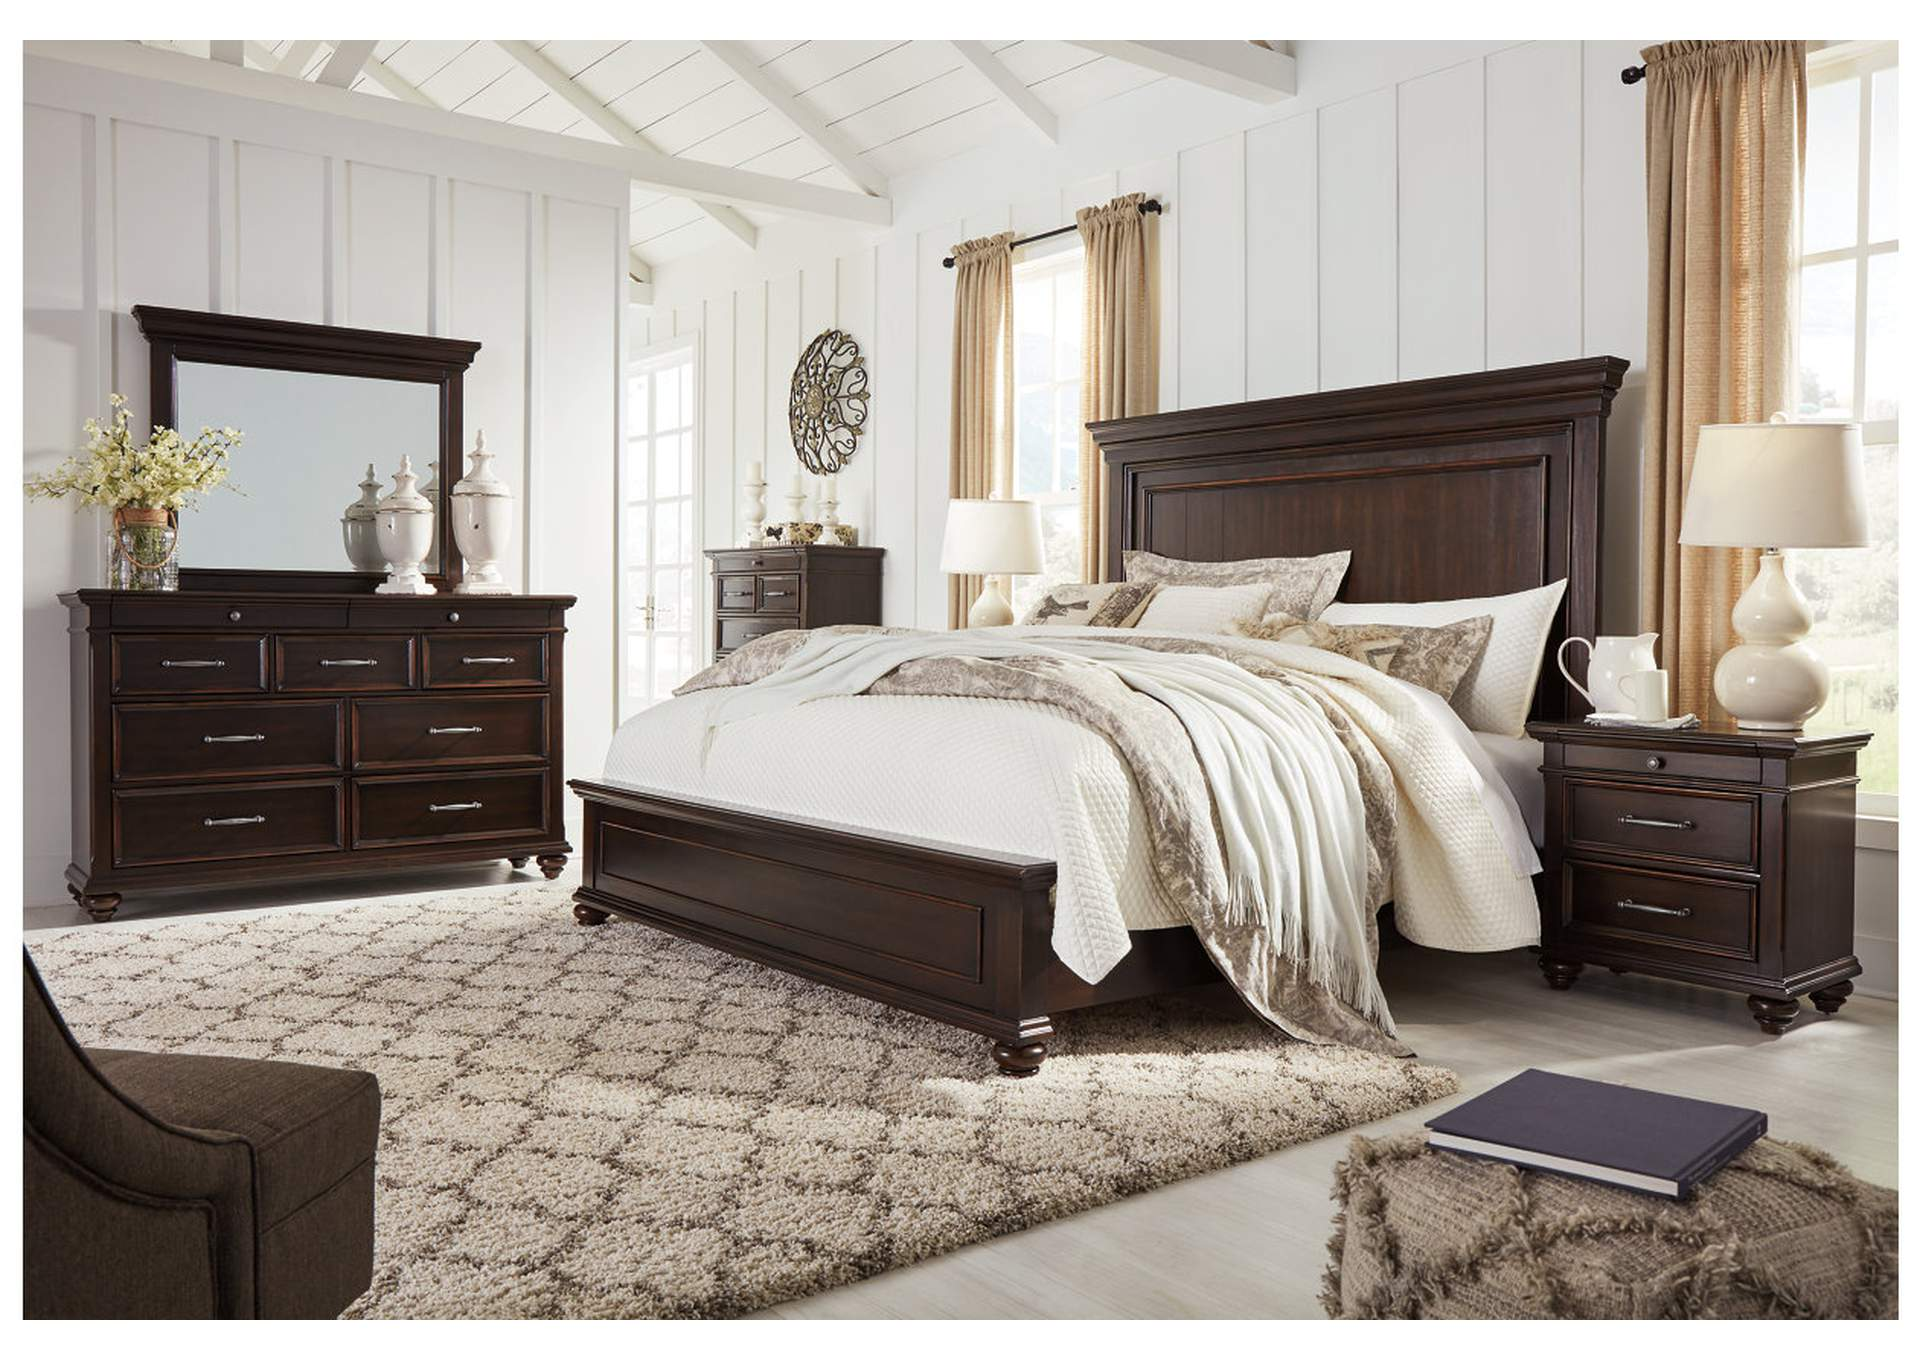 Brynhurst Brown California King Panel Bed Dresser w/Mirror,Signature Design By Ashley